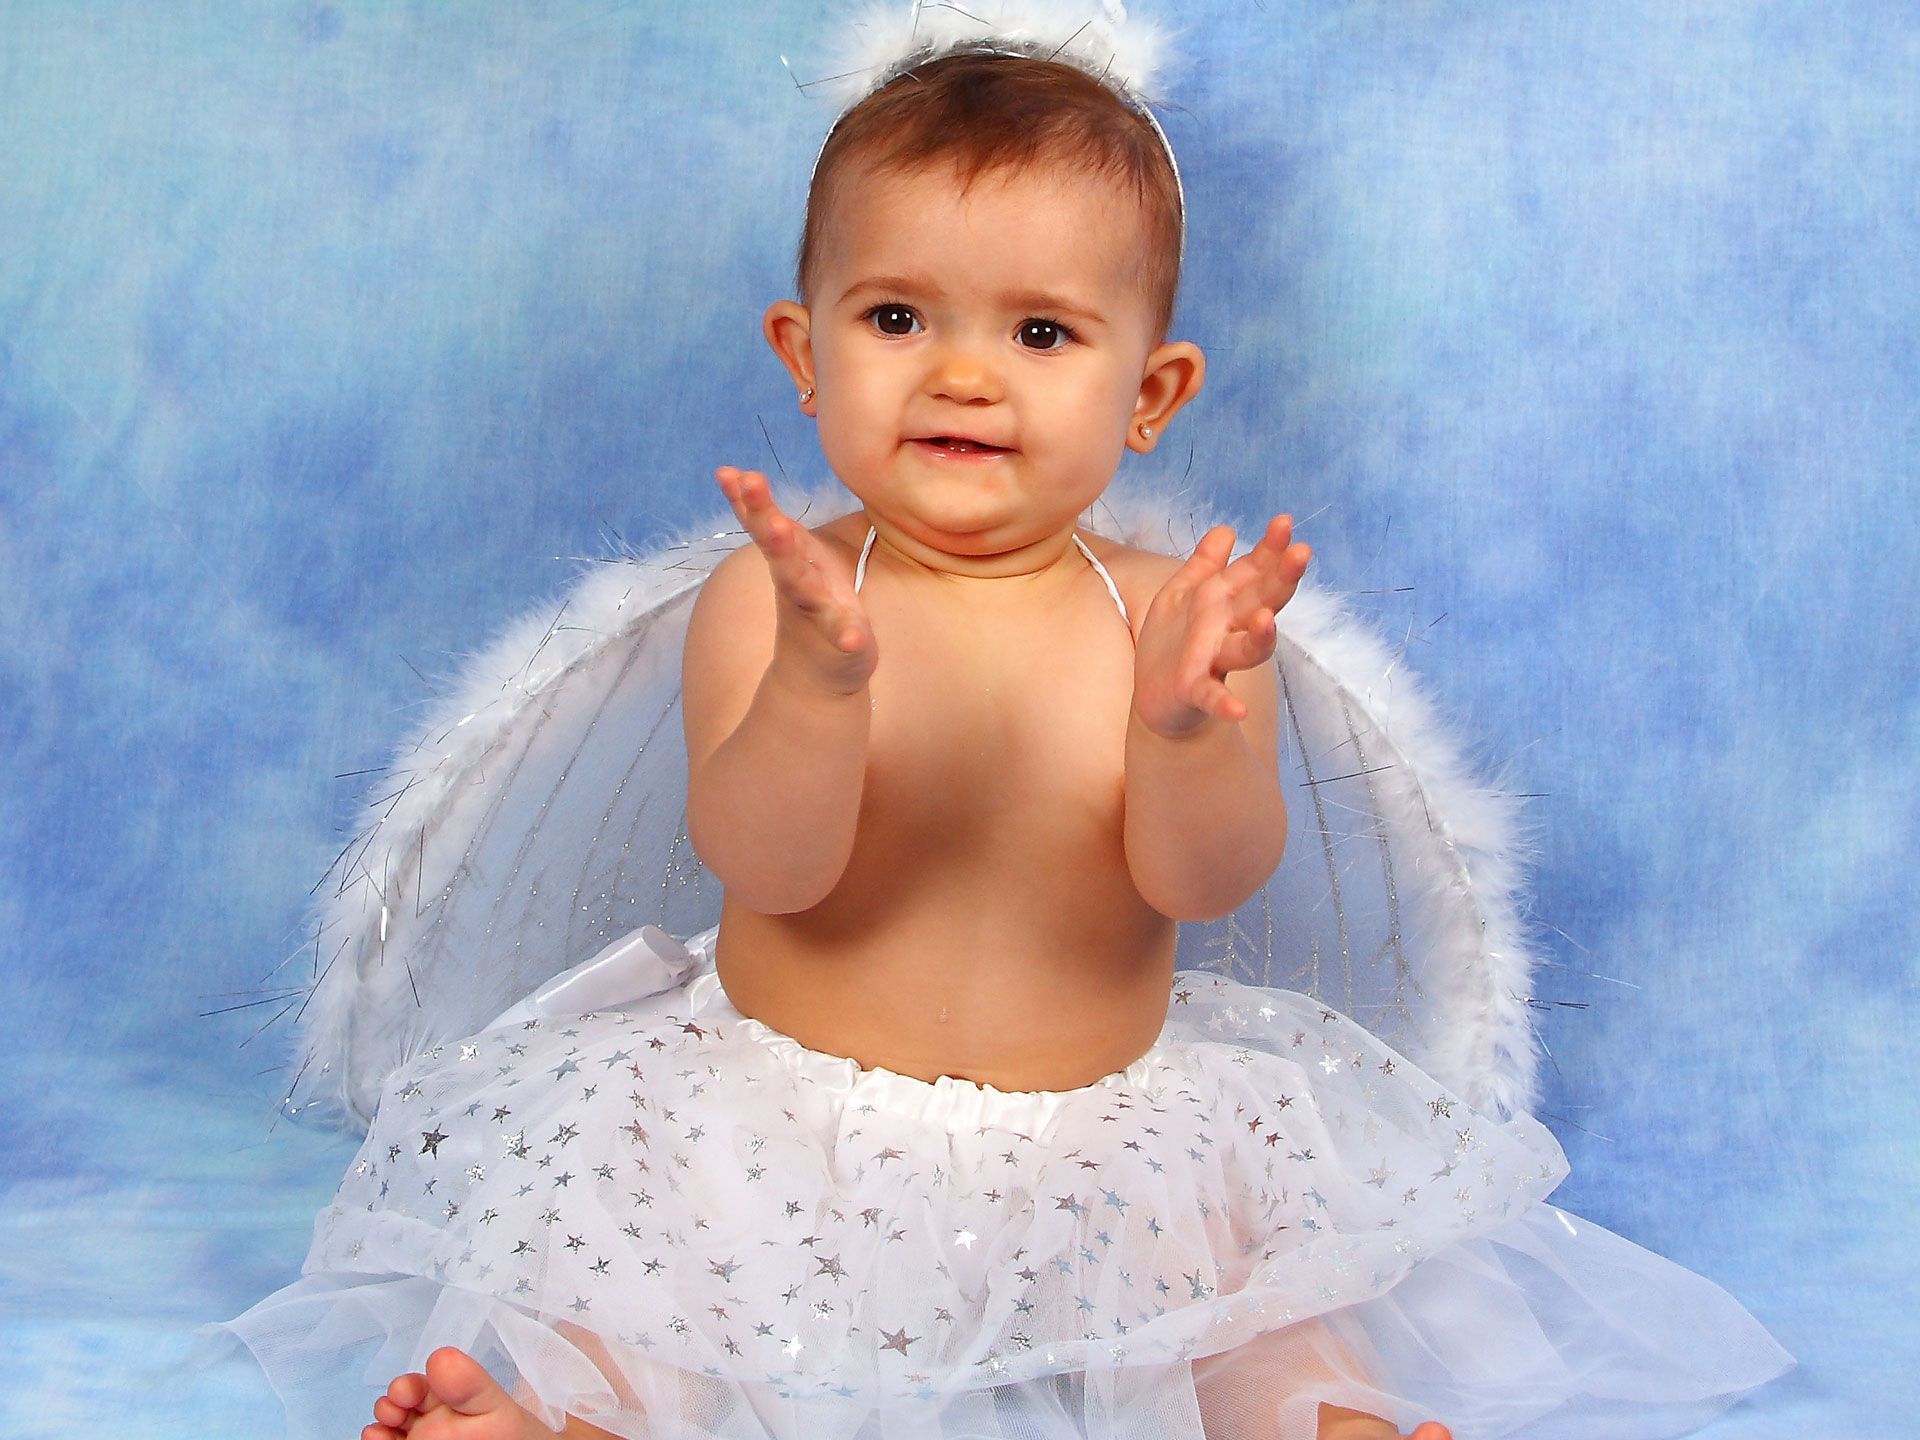 angels images | Cute Angel Baby Girl Wallpapers | HD Wallpapers ...